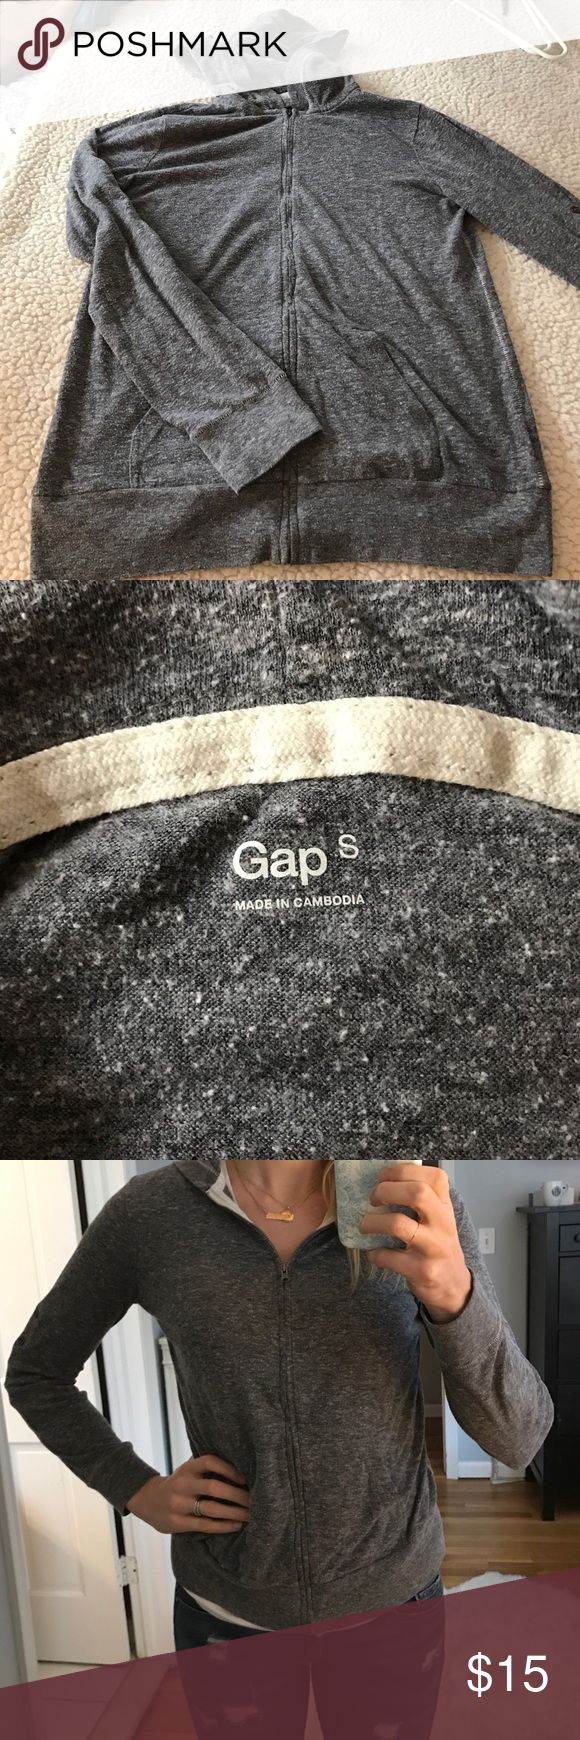 Lightweight Grey zip up hoodie Gap, lightweight Grey zip up hoodie.  Not sweatshirt material.  Very casual.  Good for lounge wear GAP Tops Sweatshirts & Hoodies